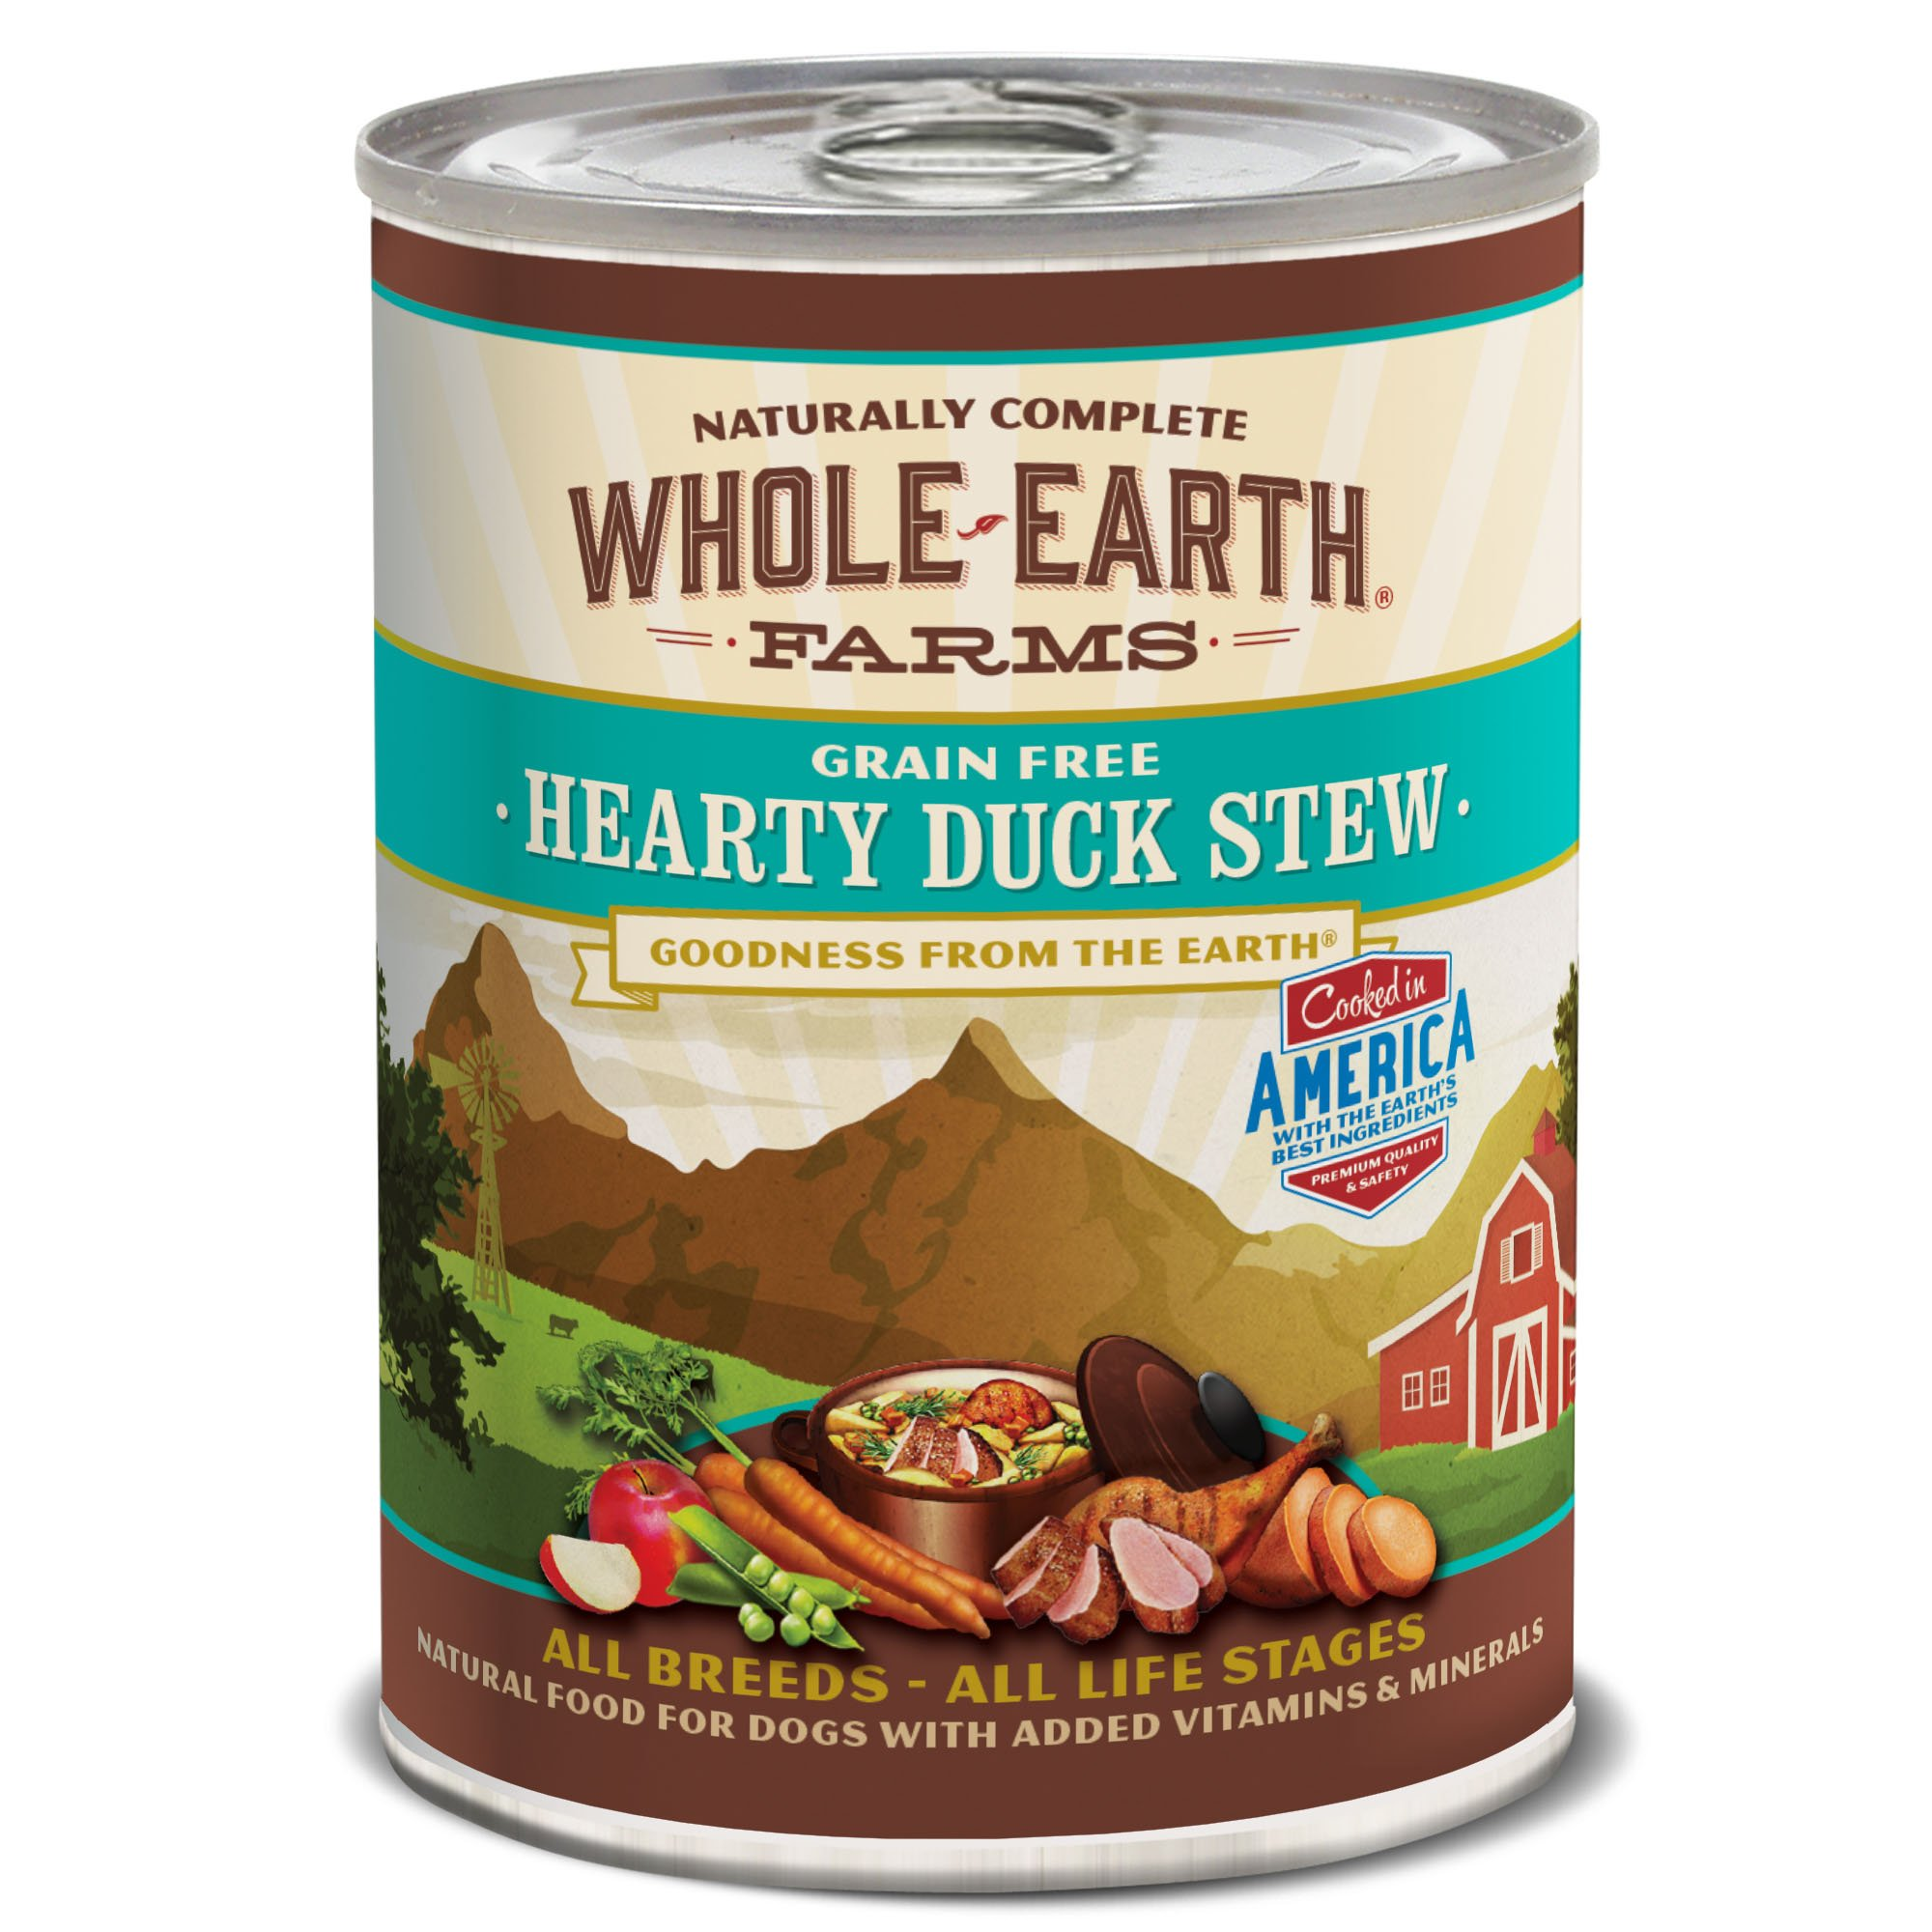 Whole Earth Farms Hearty Dog Grain Free Duck Stew 12.7 Oz, 12 Count by Whole Earth Farms